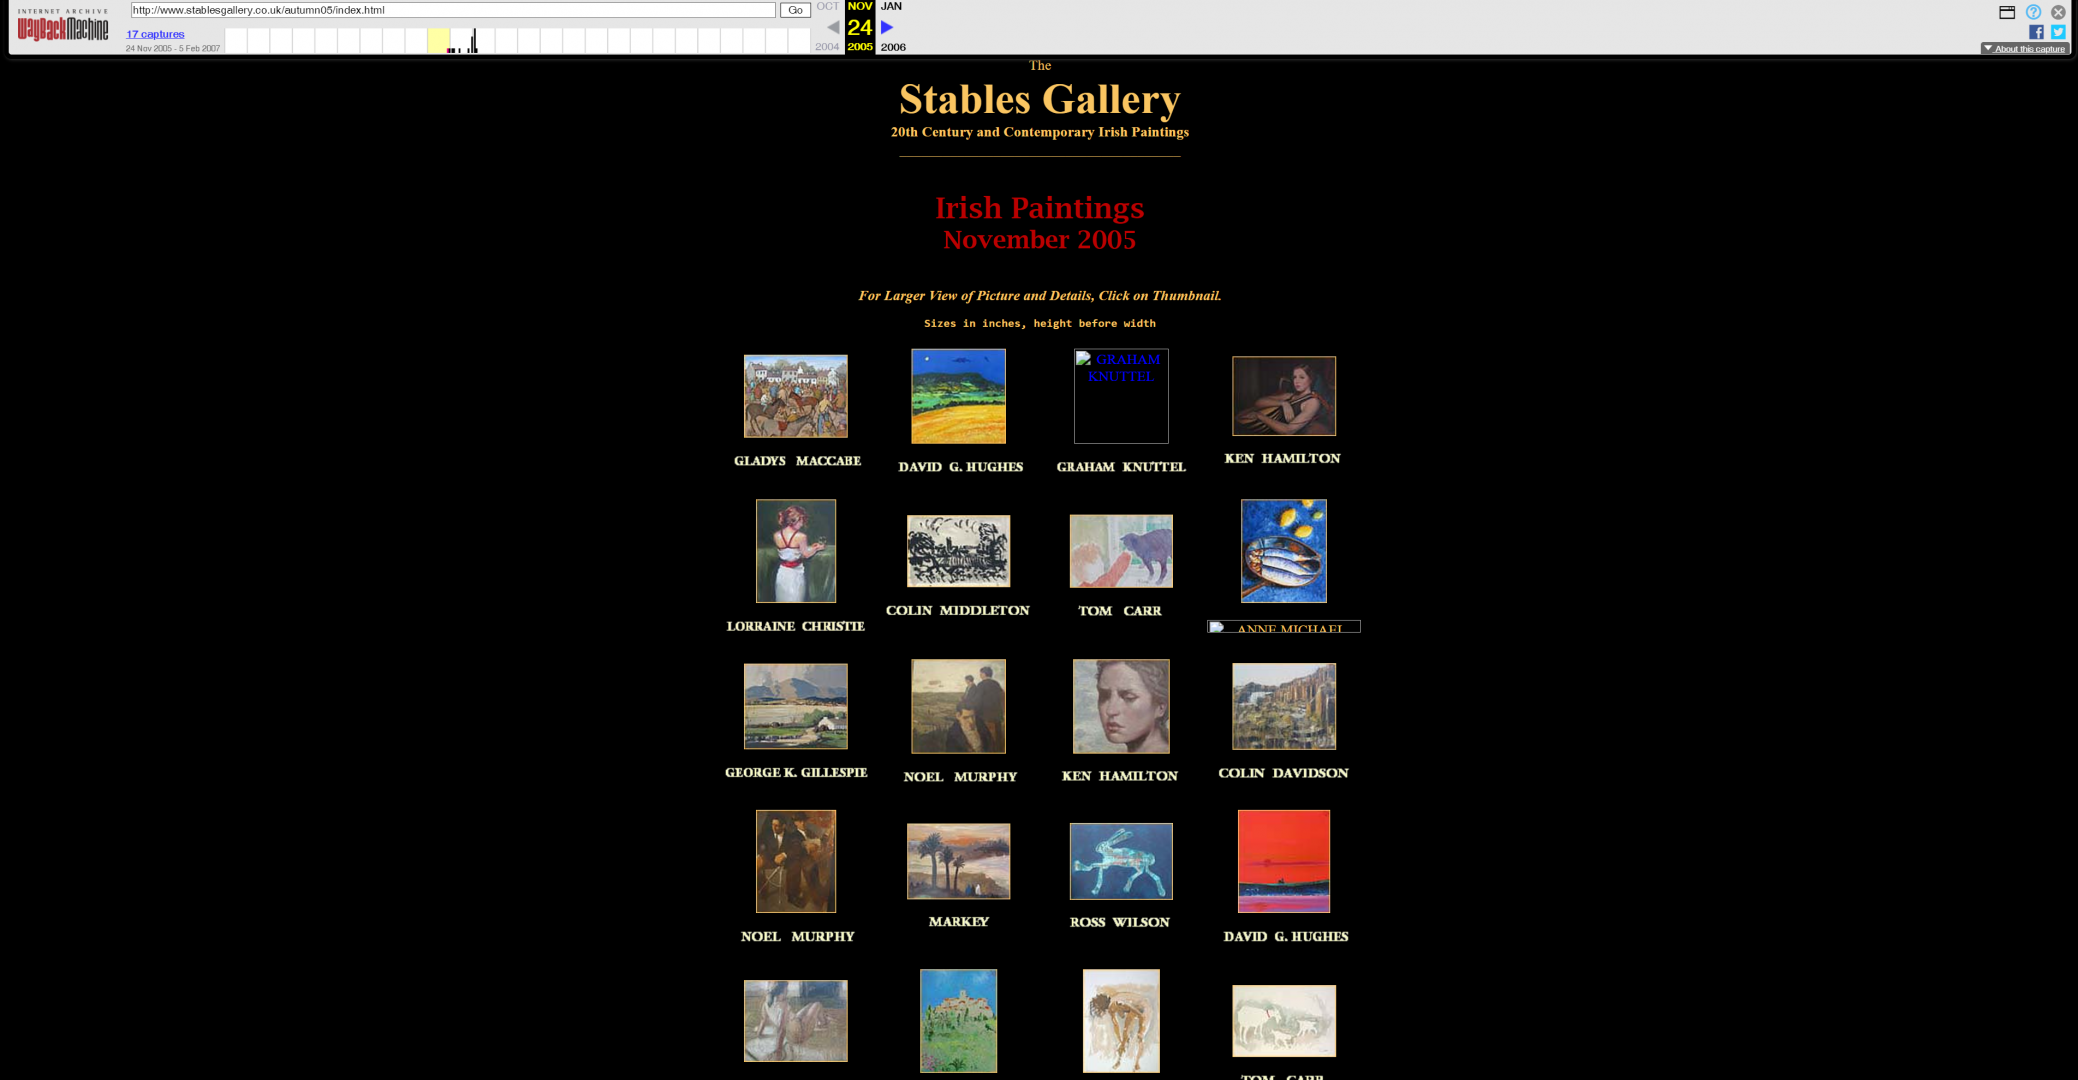 Stables Gallery now, looking very, well, 1998 if I'm totally honest. A few pictures against a black background.